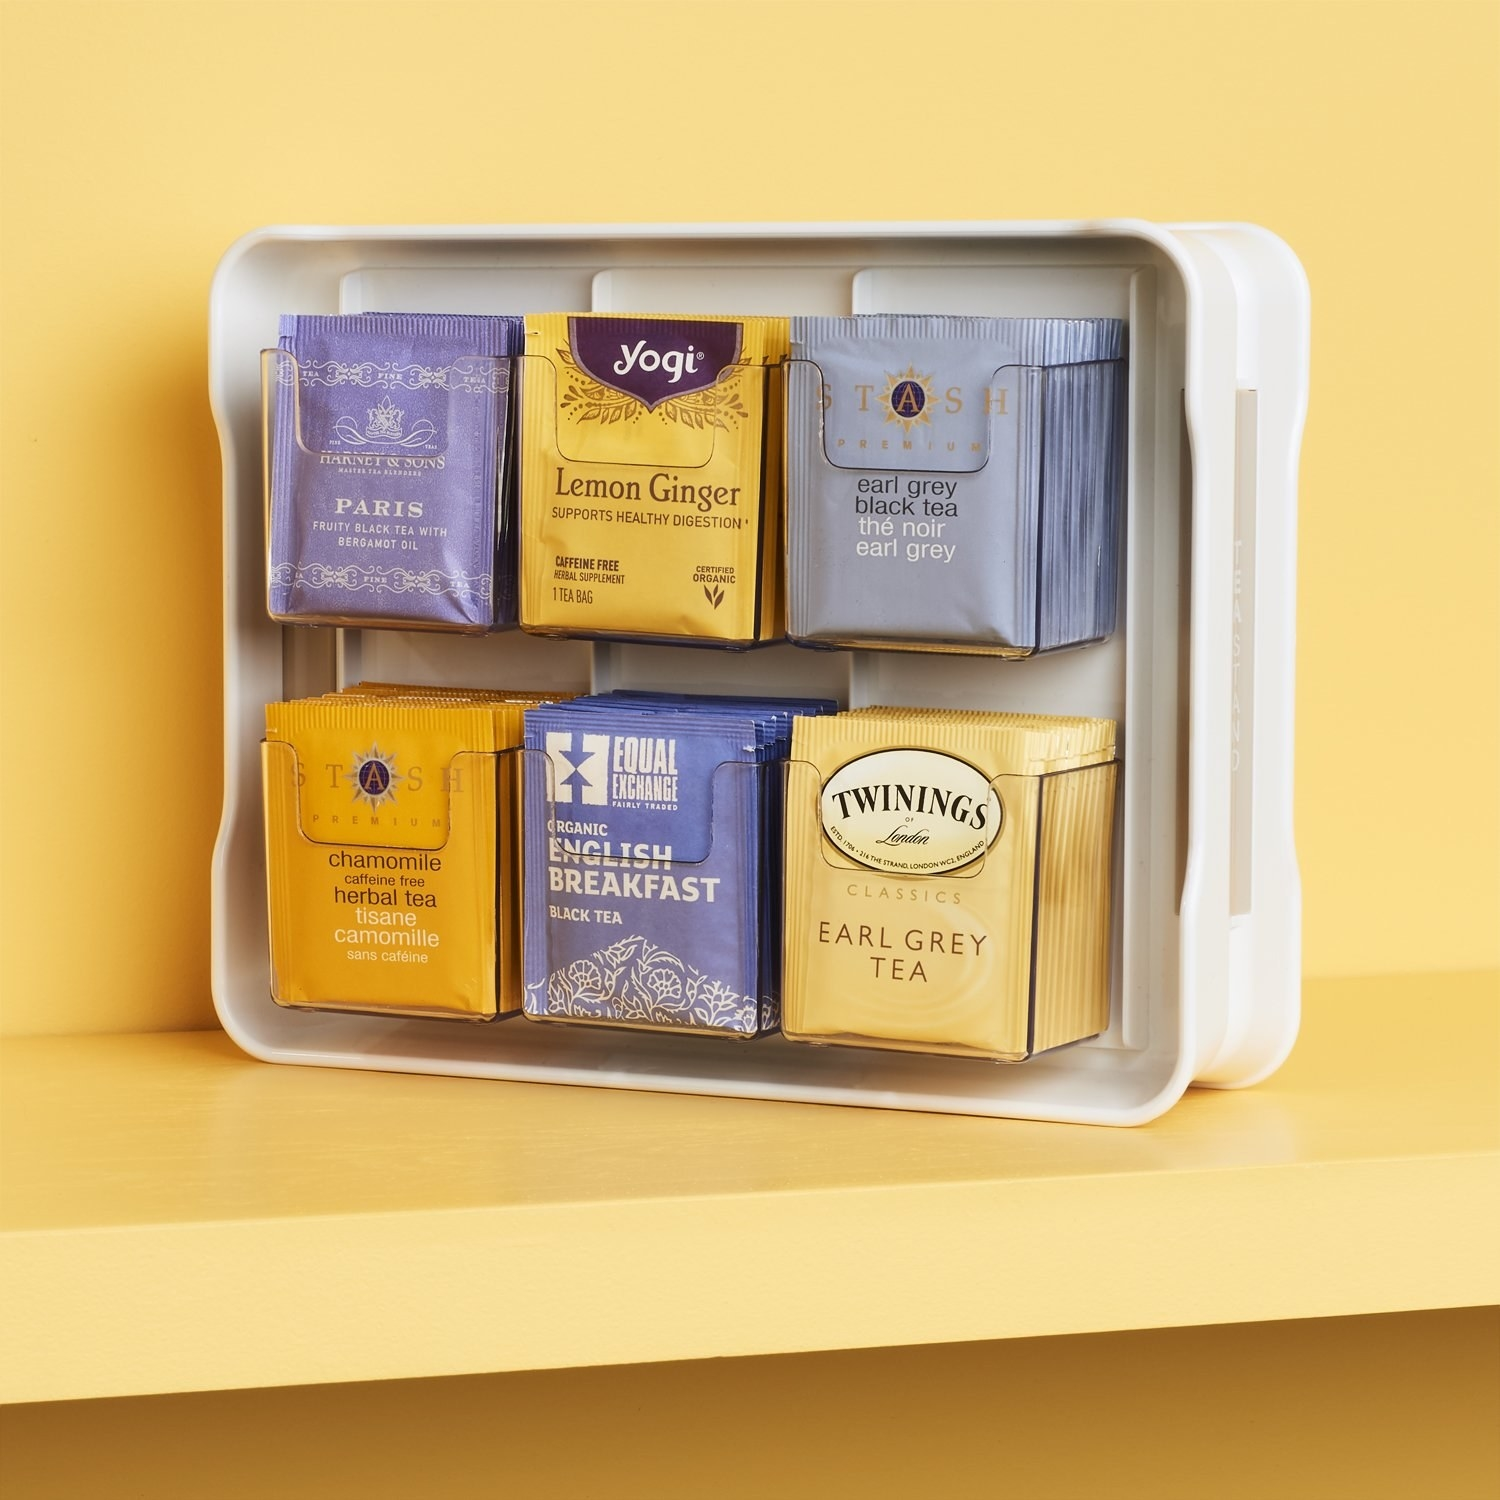 A plastic frame with six clear shelves that are fully stocked with tea packages